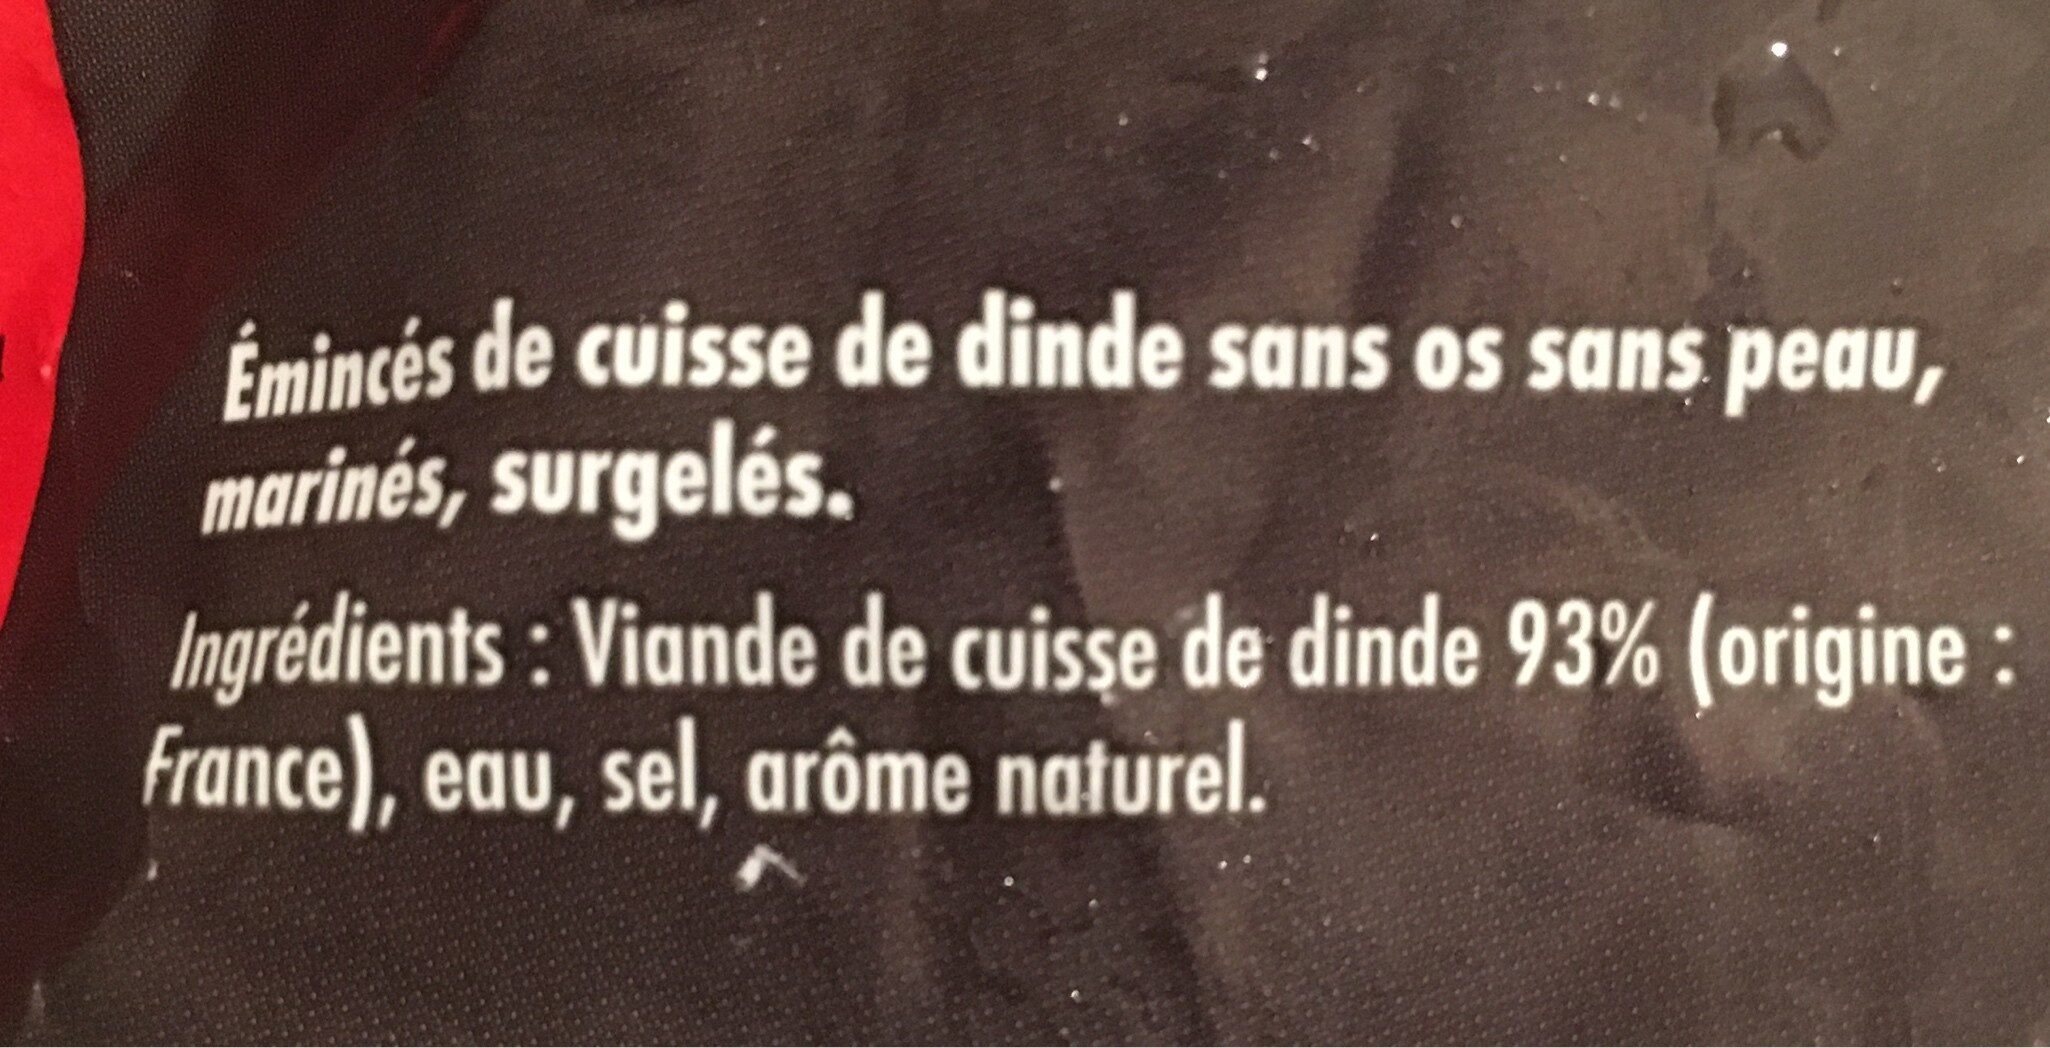 Emincés de dinde - Ingredients - fr